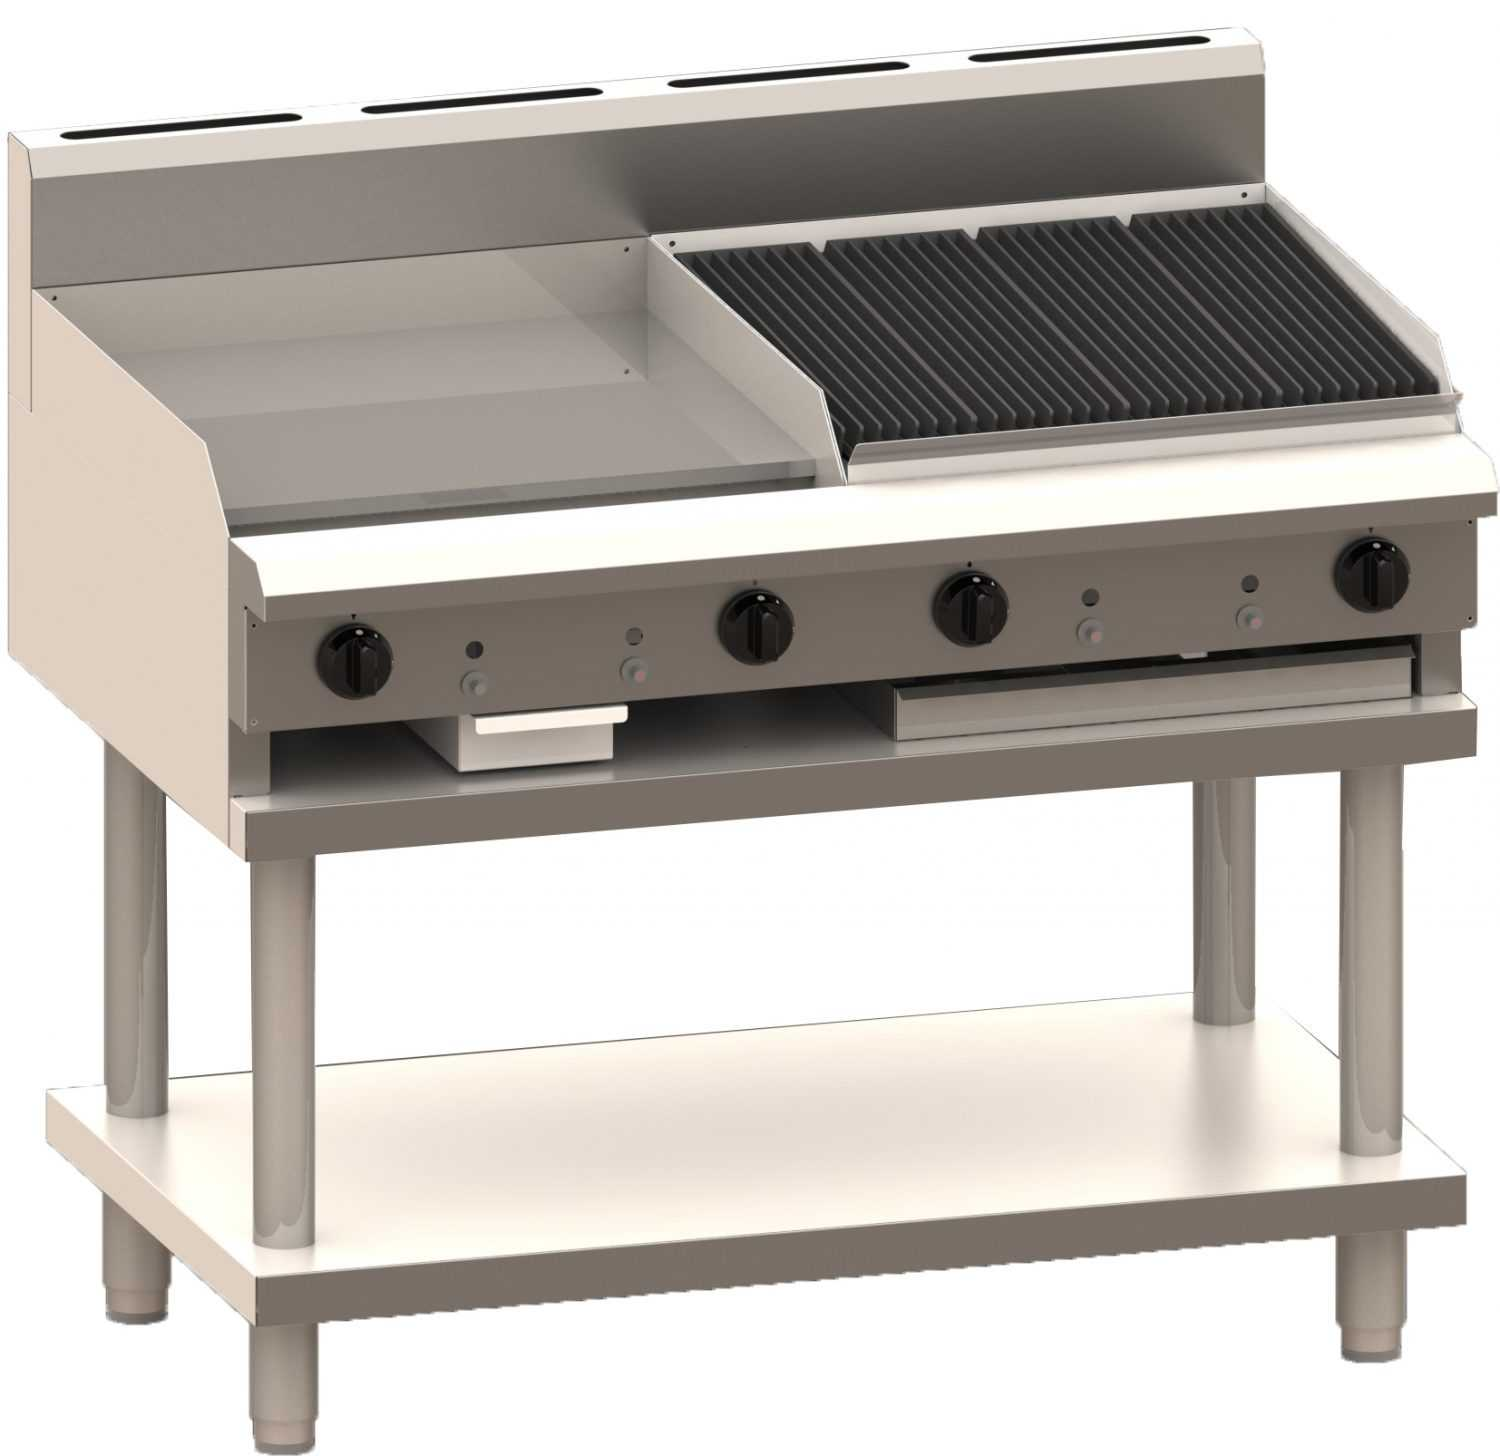 Luus Professional CS-6P6C 600mm Griddle 600mm Chargrill Combination with legs & shelf